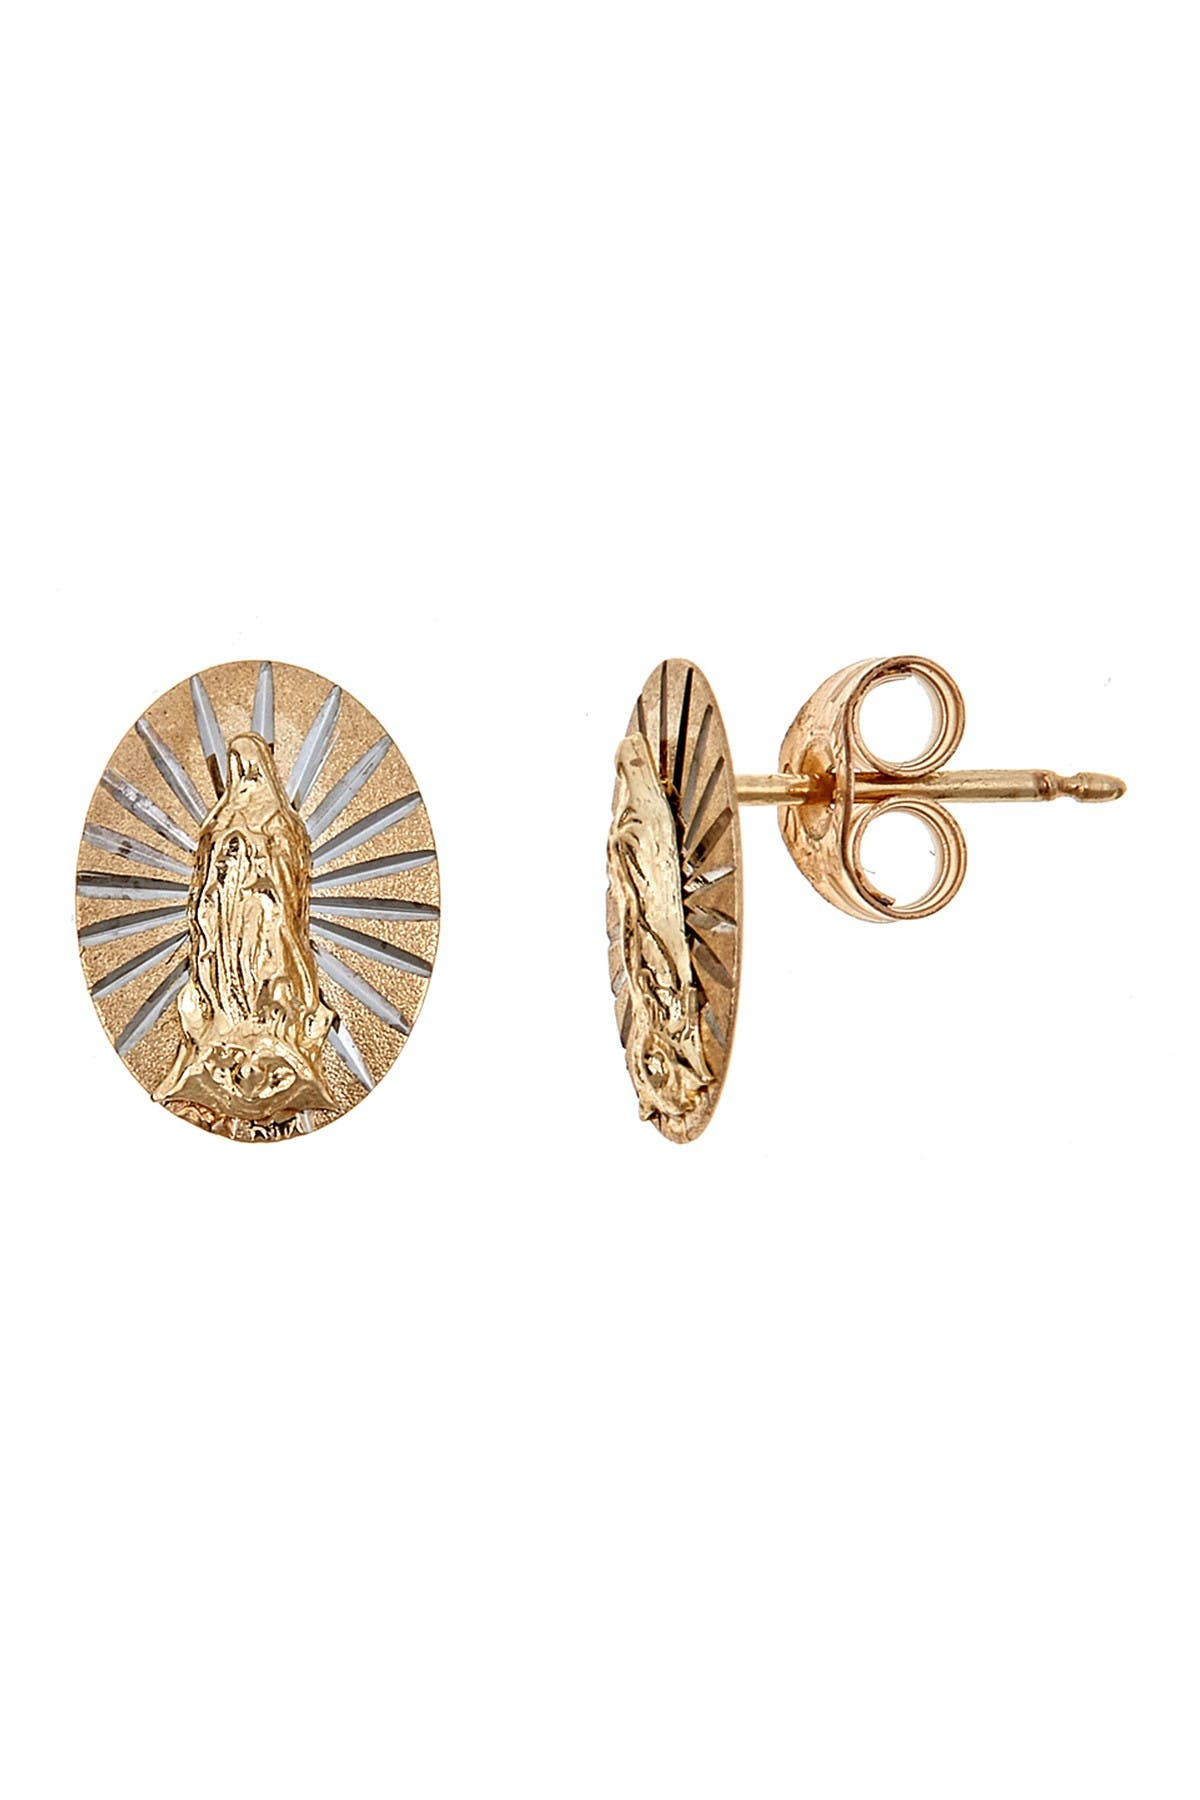 Image of Best Silver Inc. 14K Yellow Gold Etched Guadalupe Stud Earrings